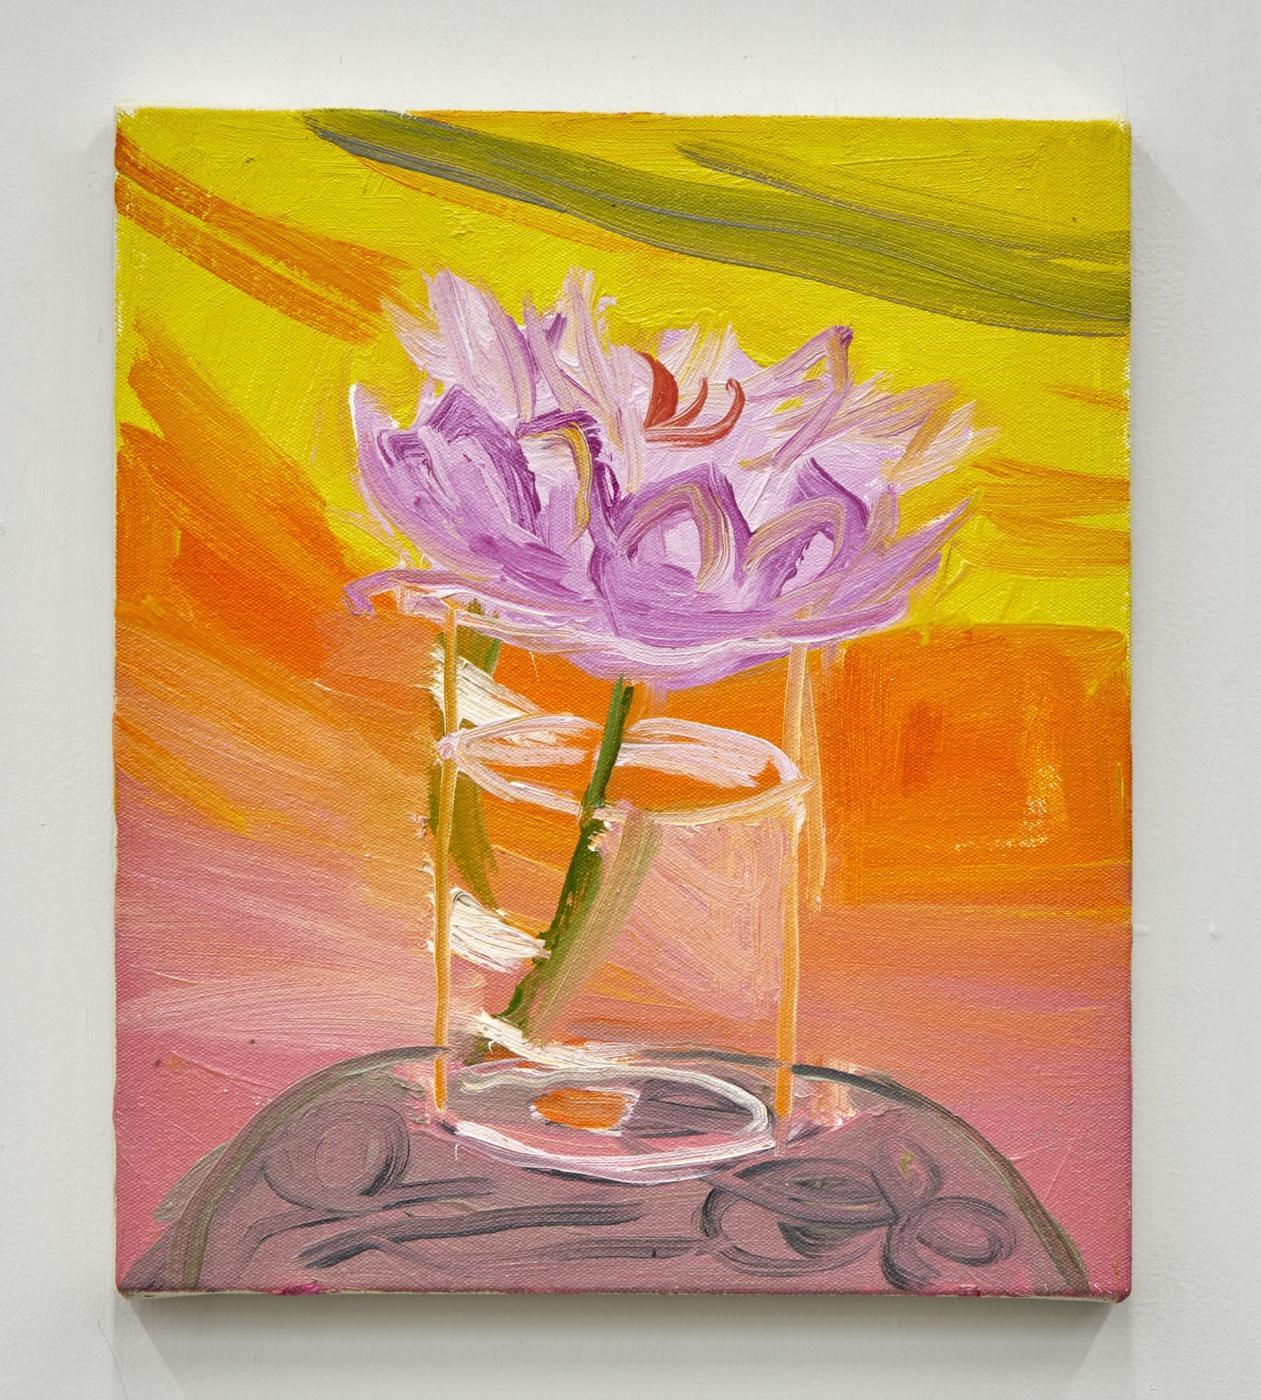 Ann Craven, /Sunset Peony, Again (Last One for Real, in a Glass, Guilford,  6-18-20), 2020/, 2020, oil on linen, 35.6 × 30.5 cm